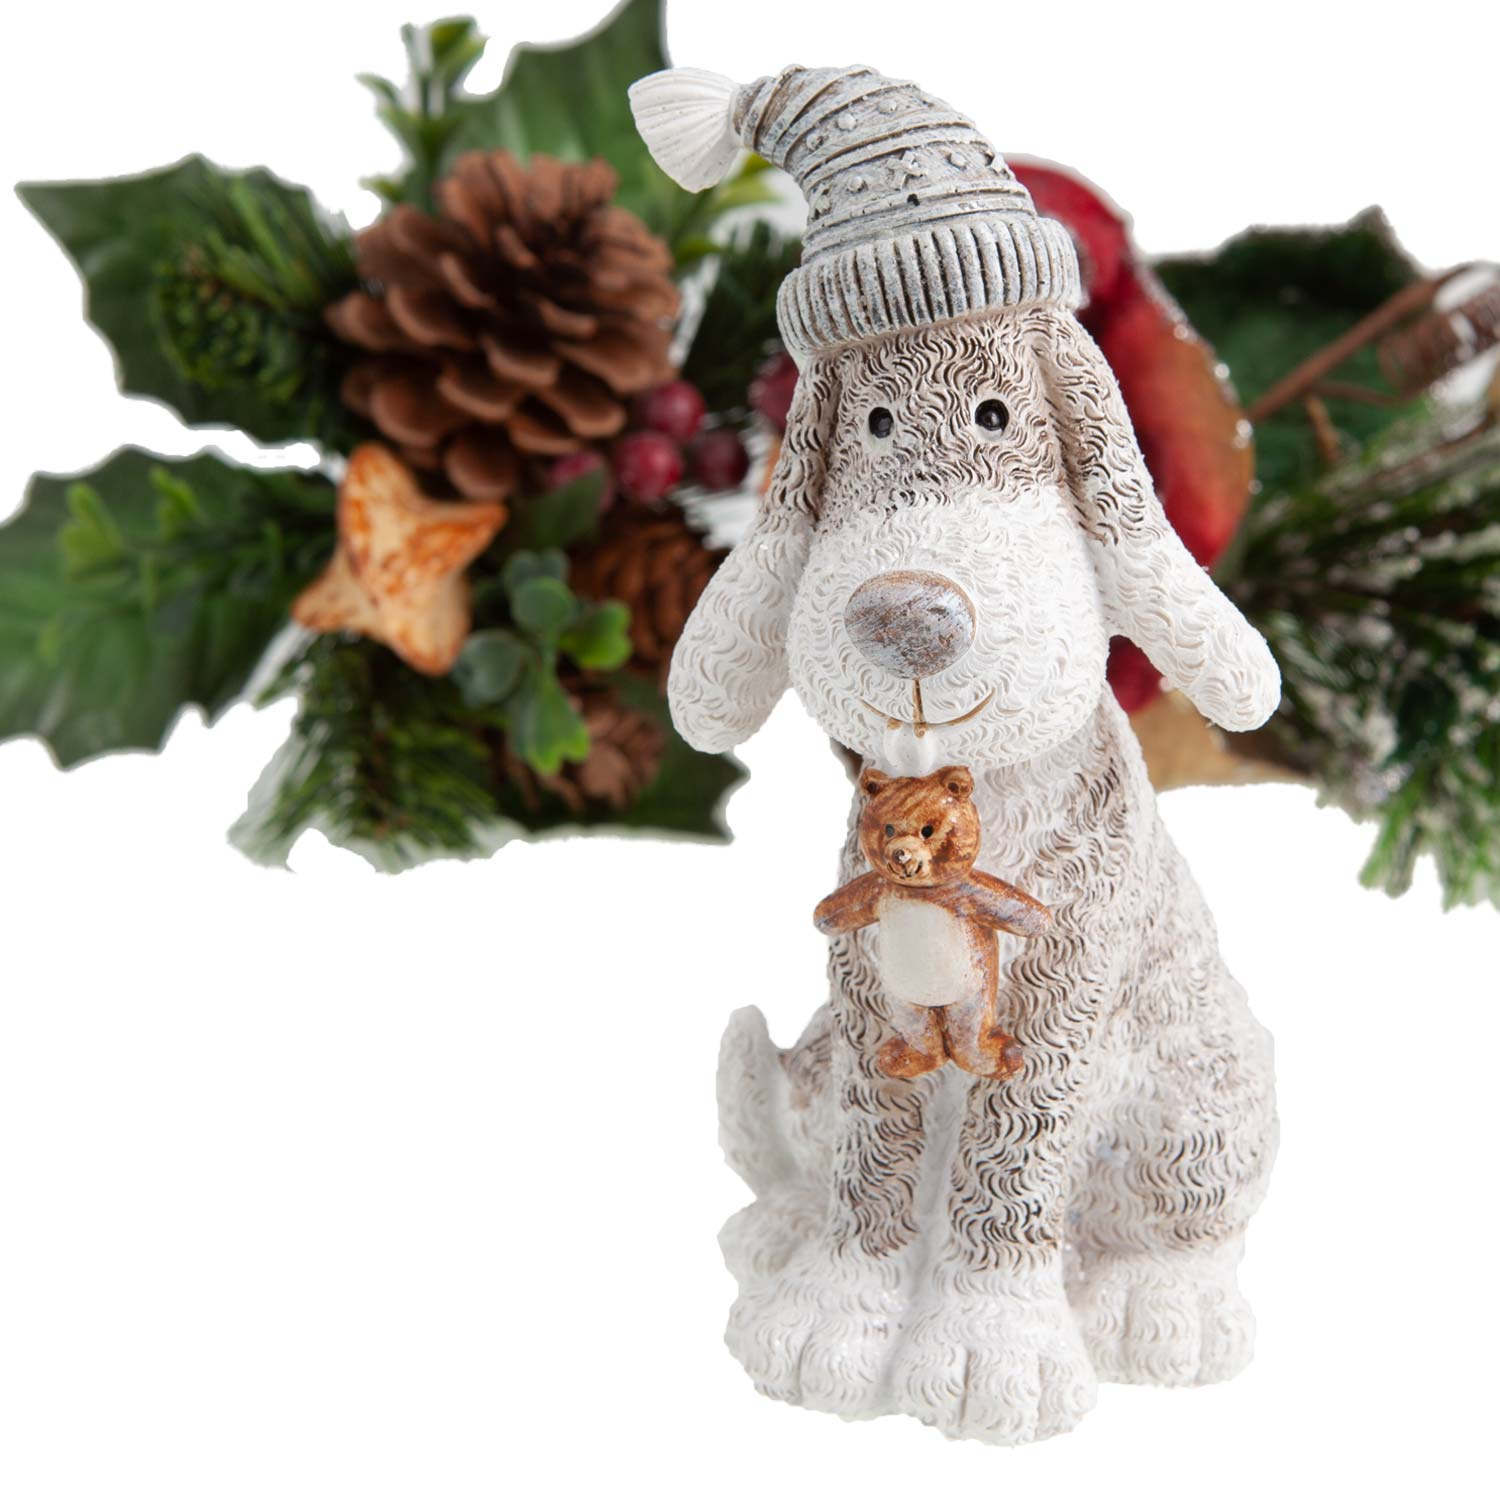 Dog Krazy Gifts - Dog in Hat ith Teddy Bear Christmas Decoration - available from the Christmas Grotto at DogKrazyGifts.co.uk